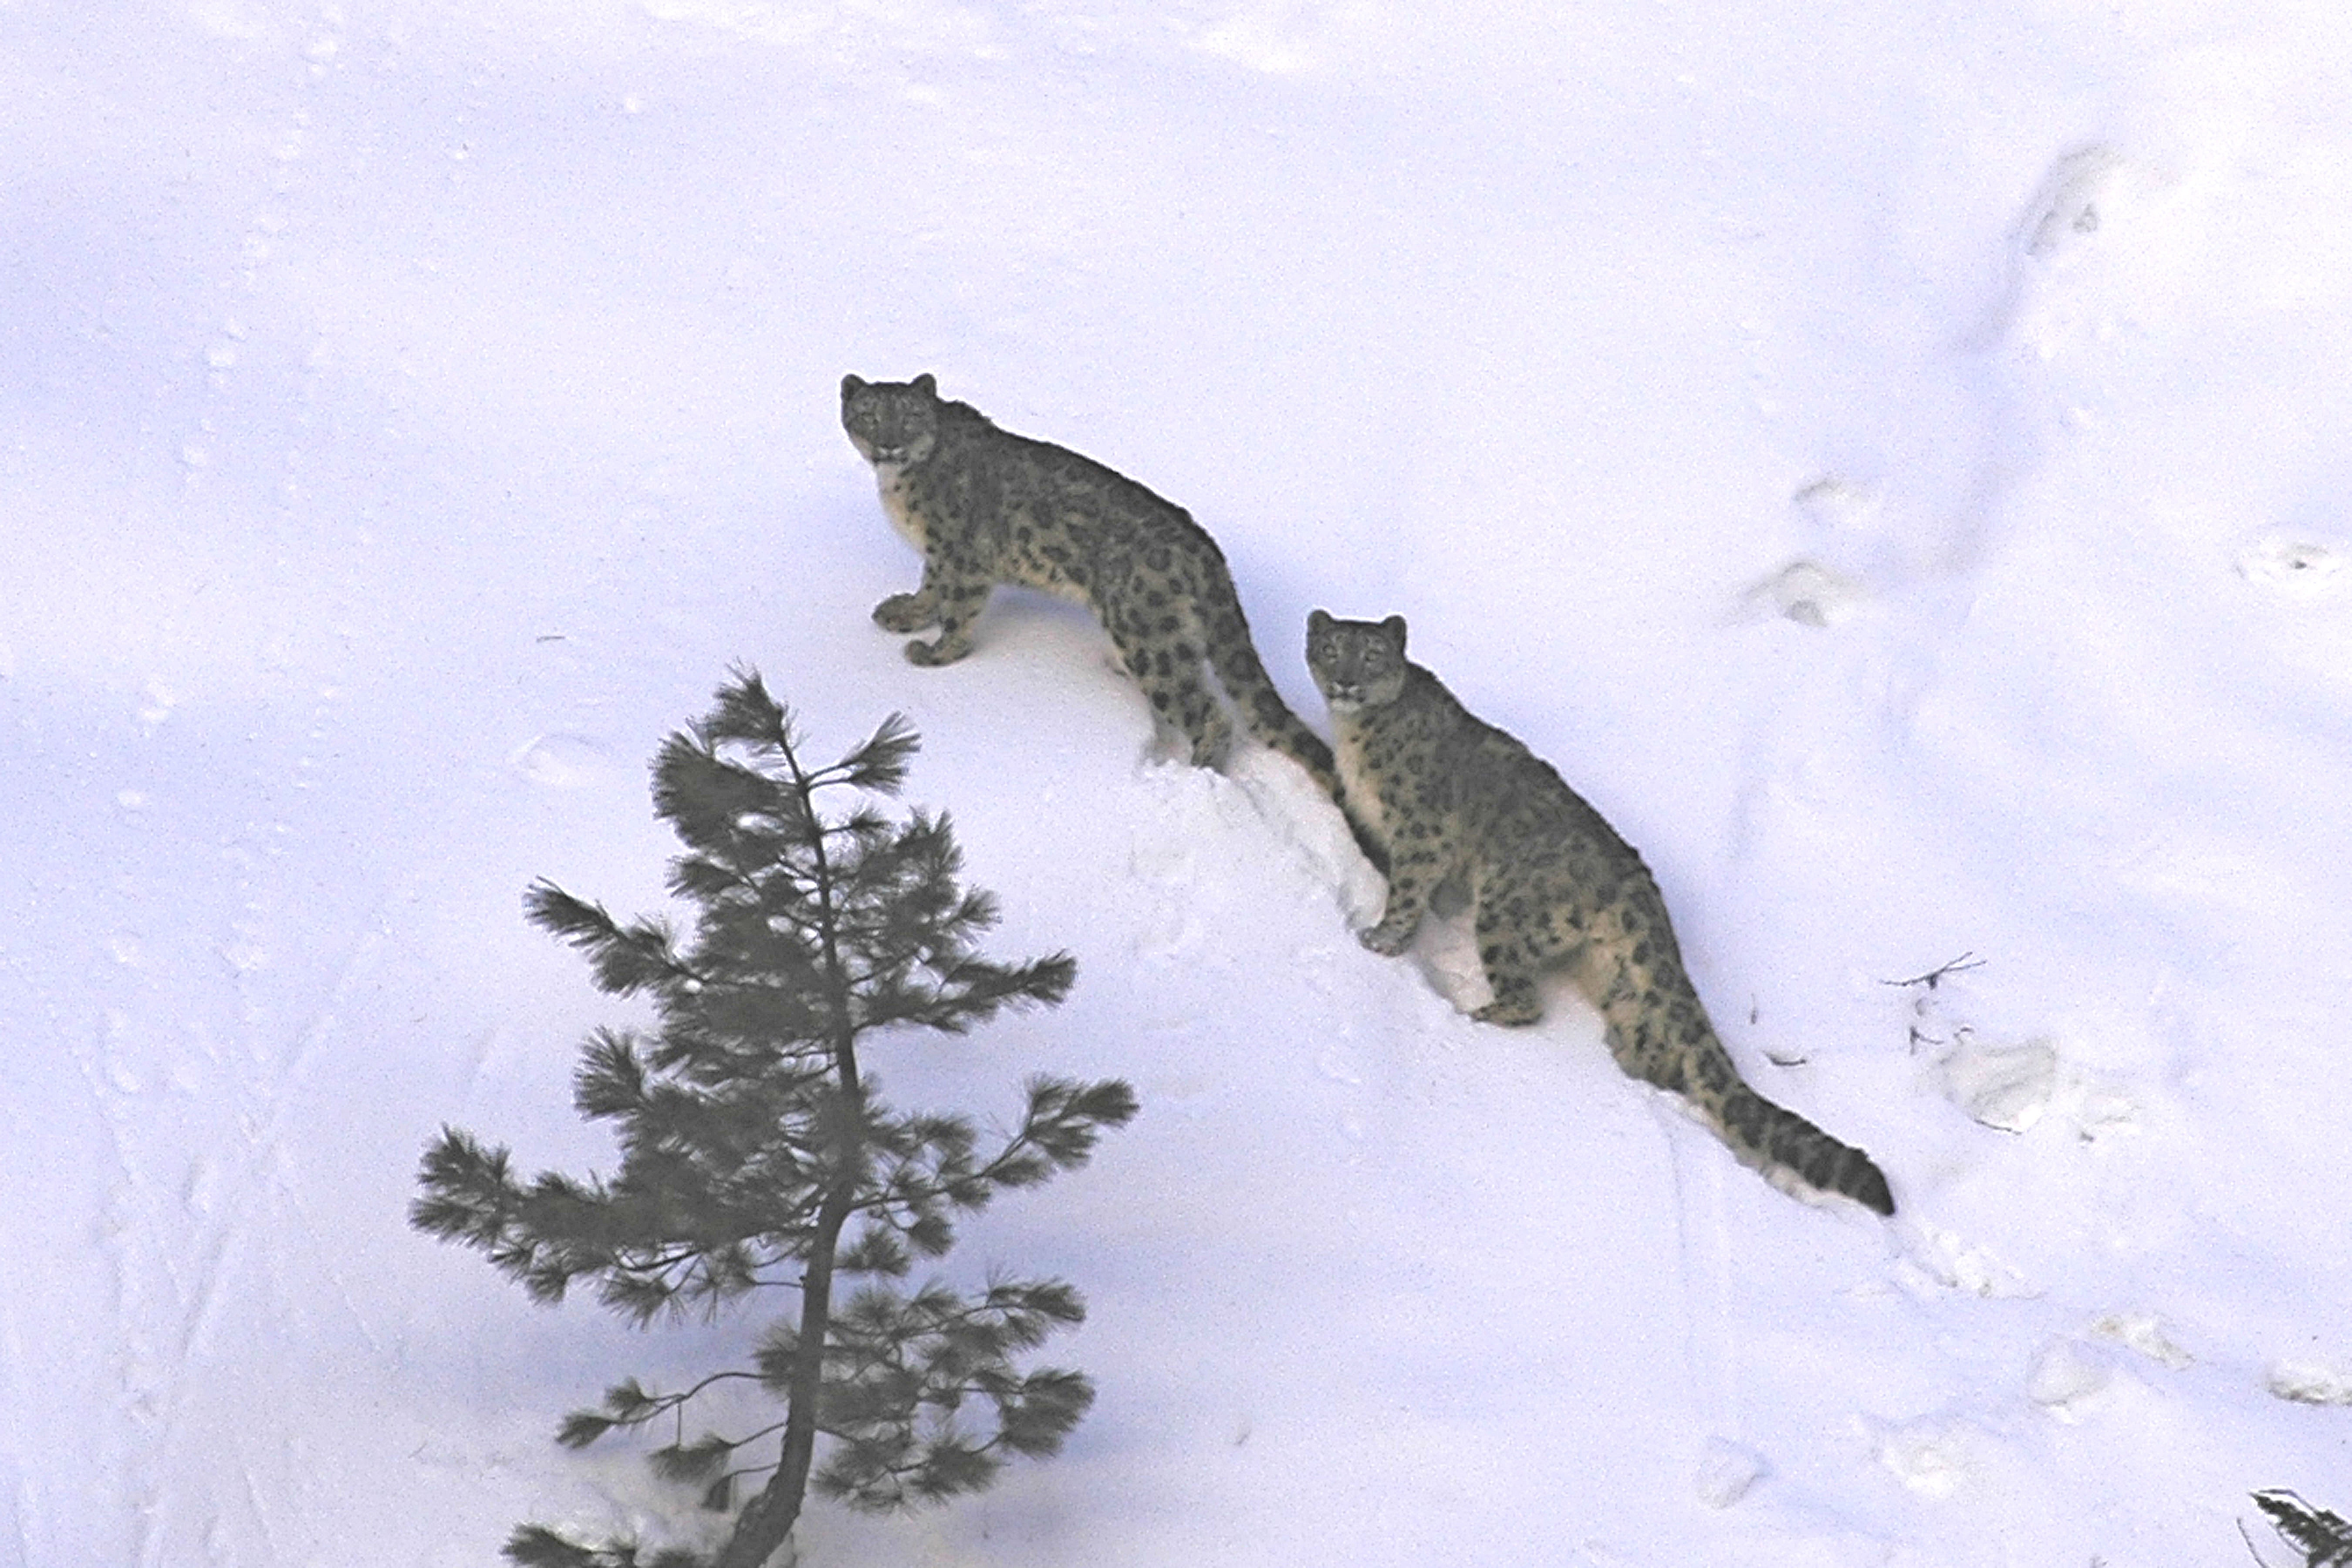 A rare sighting of a snow leopard pair. Photo Credit: Snow Leopard Conservancy